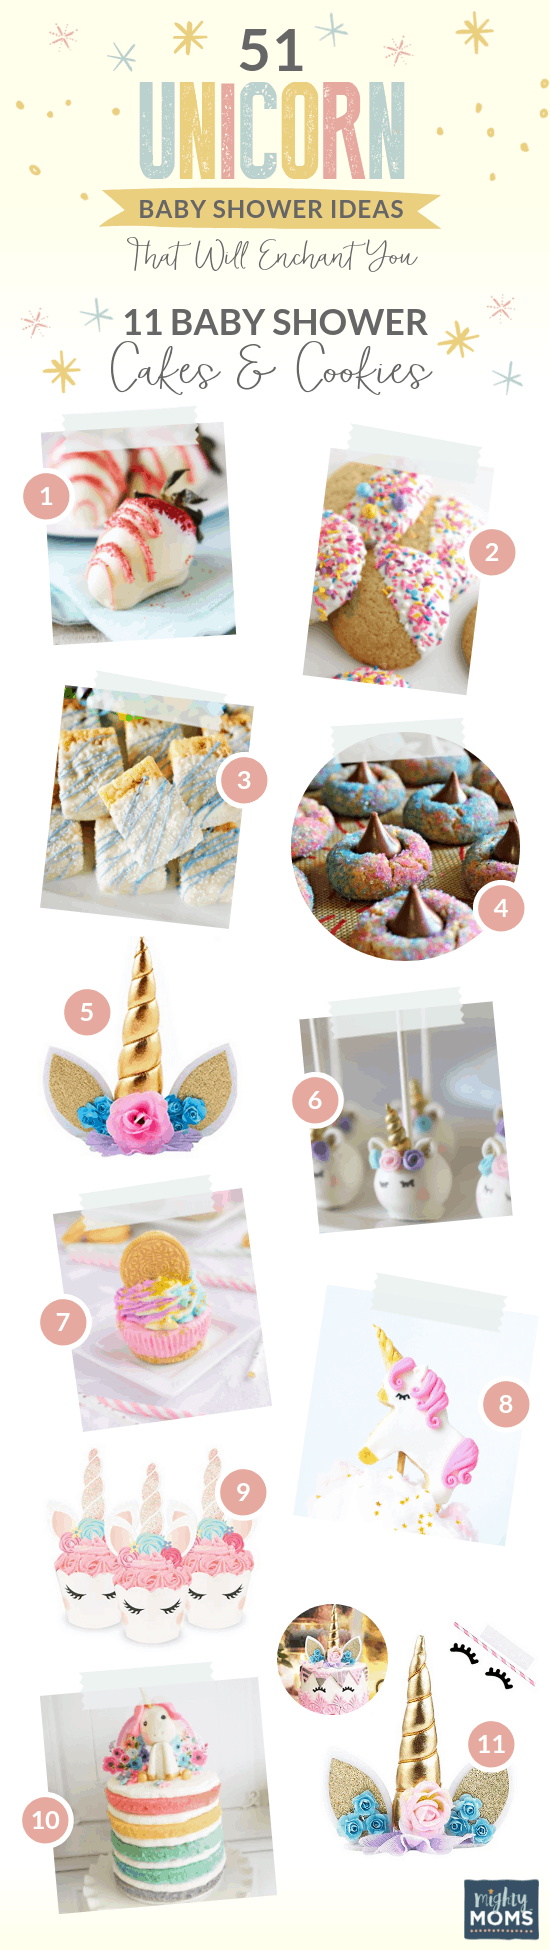 10 Bewitching Unicorn Baby Shower Bakes - MightyMoms.club